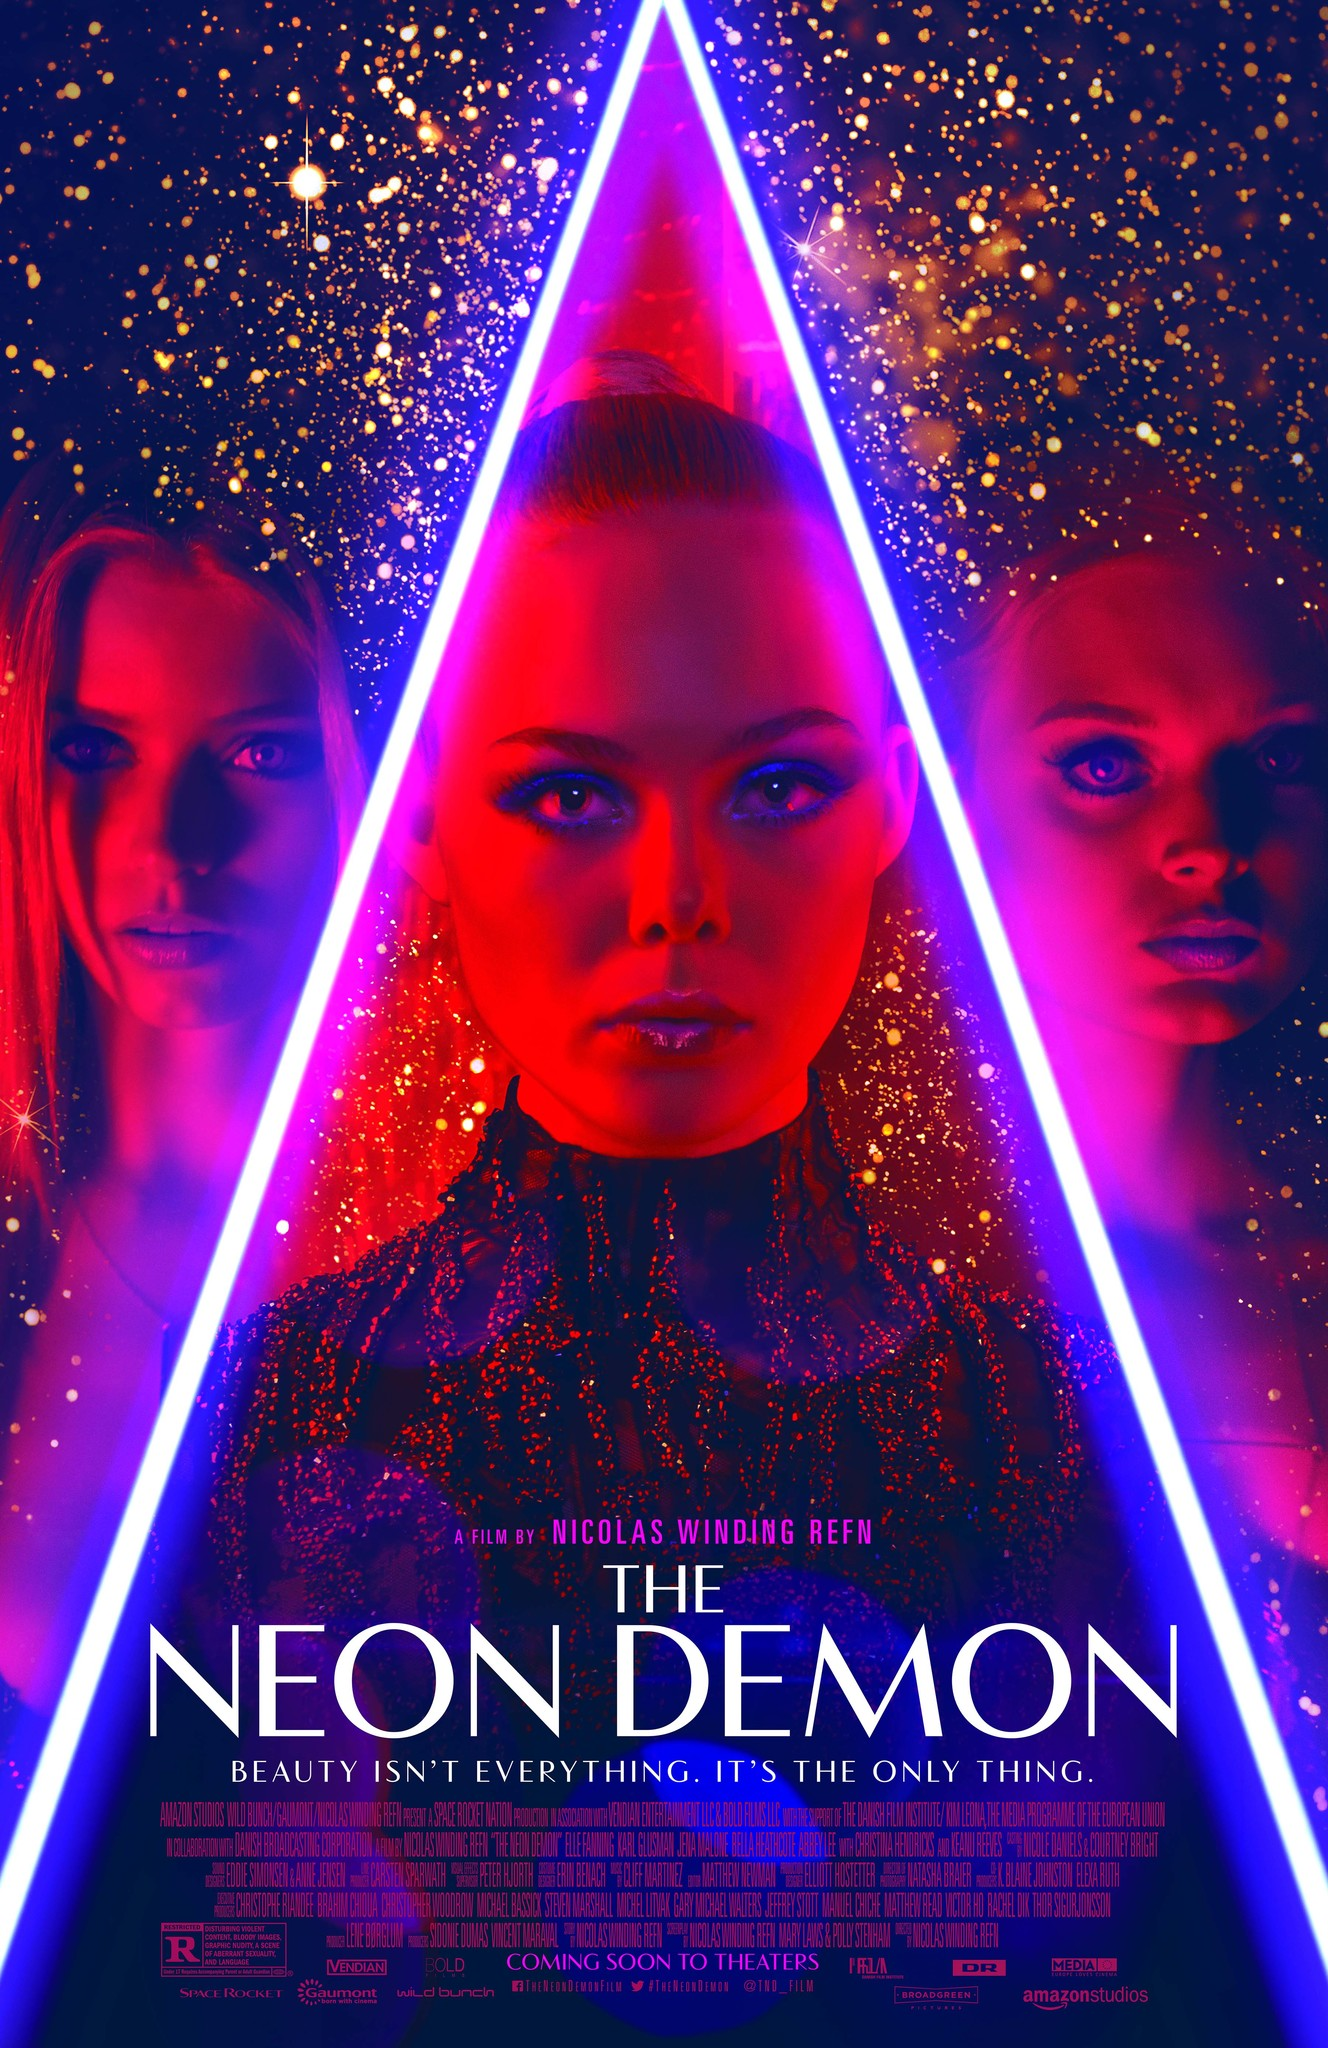 The Neon Demon (2016) Technical Specifications